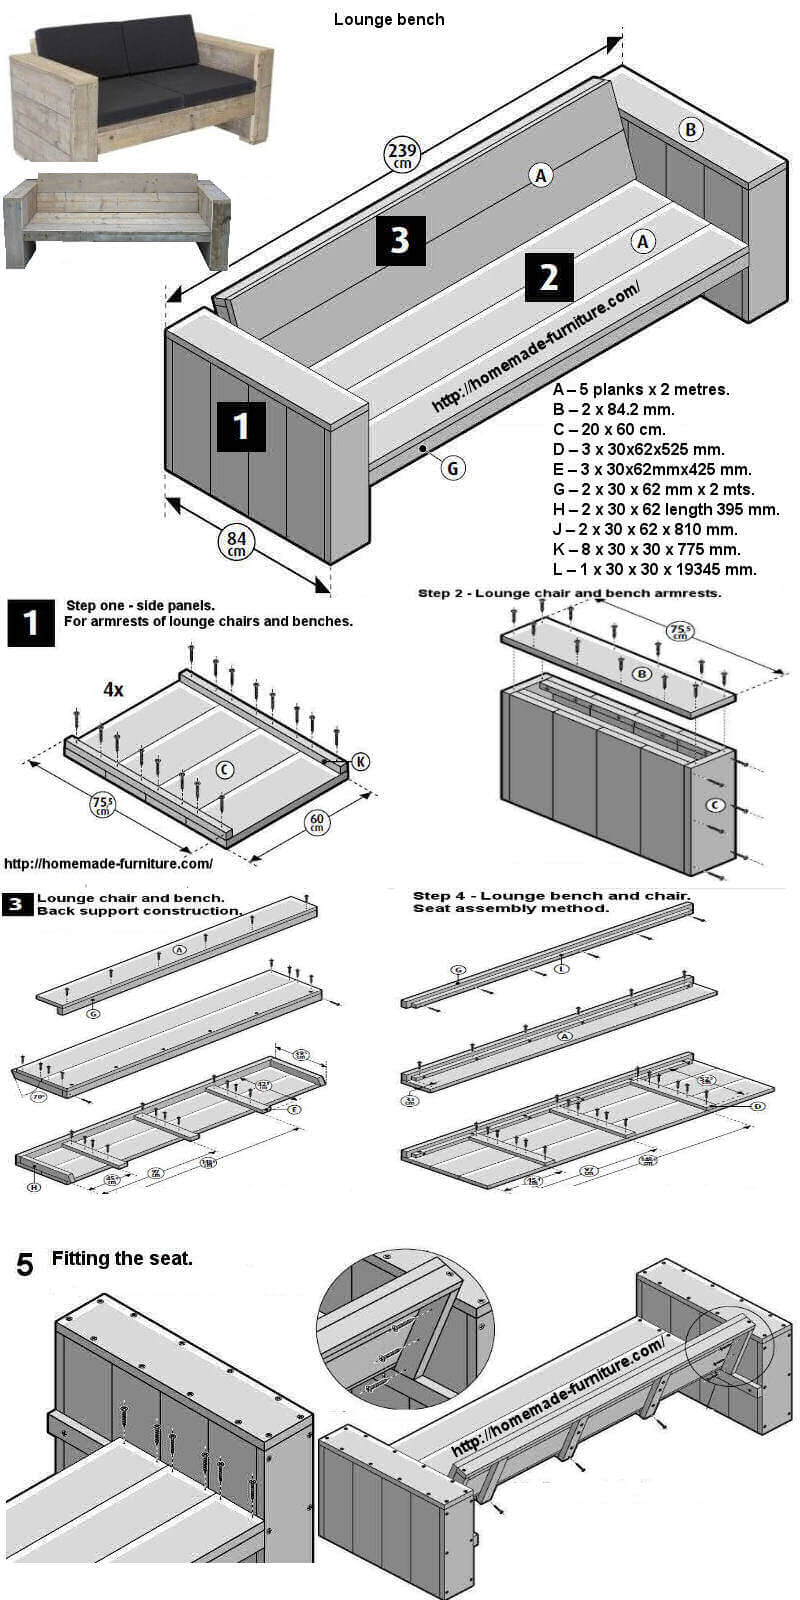 Lounge bench tutorial, building plans of homemade scaffold wood furniture.